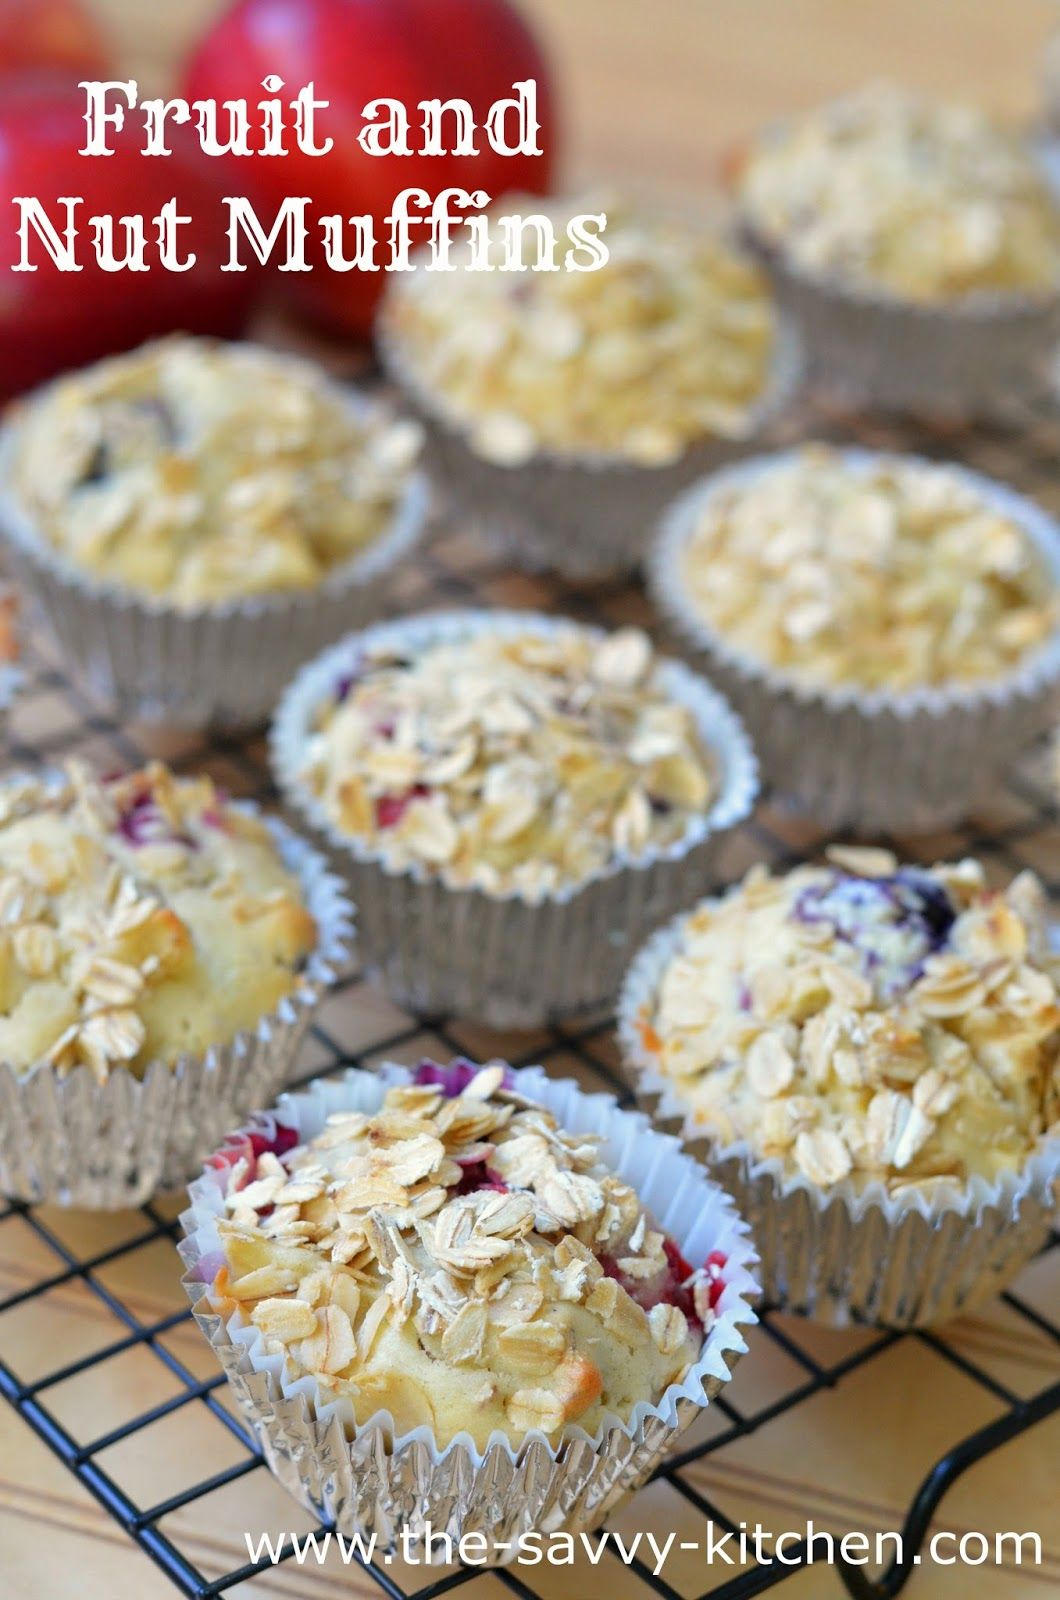 The Savvy Kitchen: Fruit and Nut Muffins